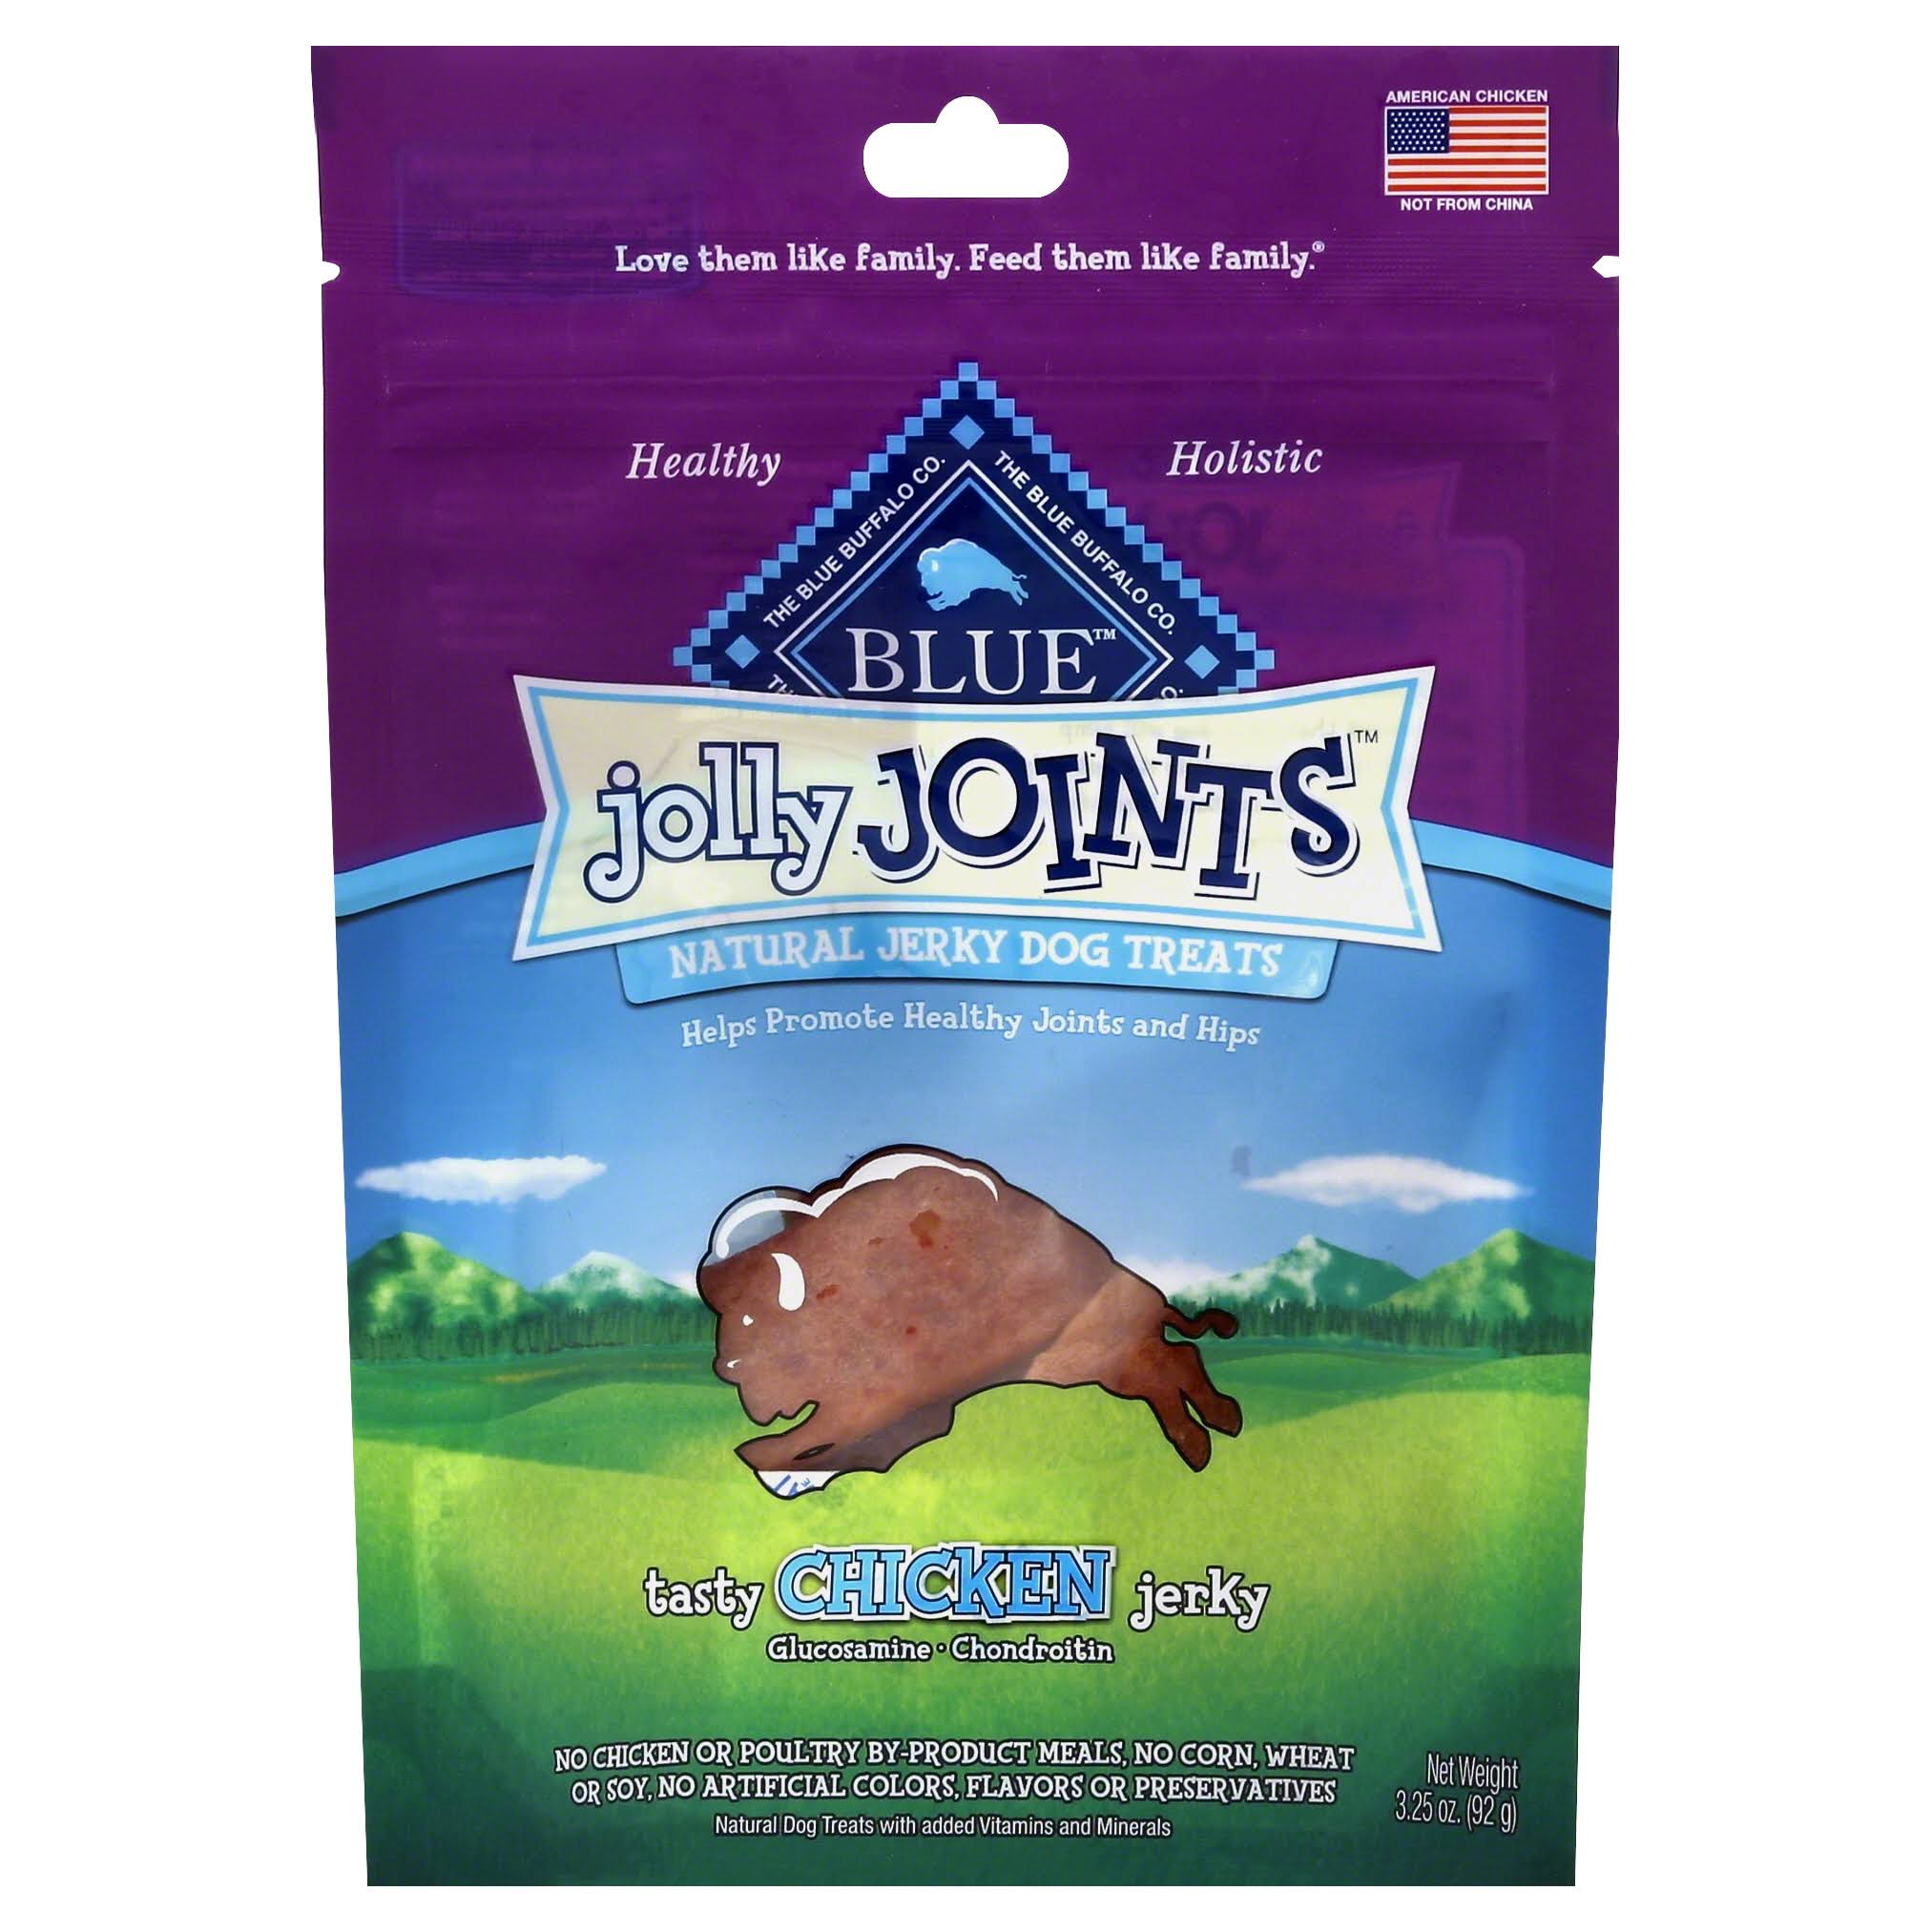 Blue Buffalo Jolly Joints Natural Jerky Dog Treats - 92g